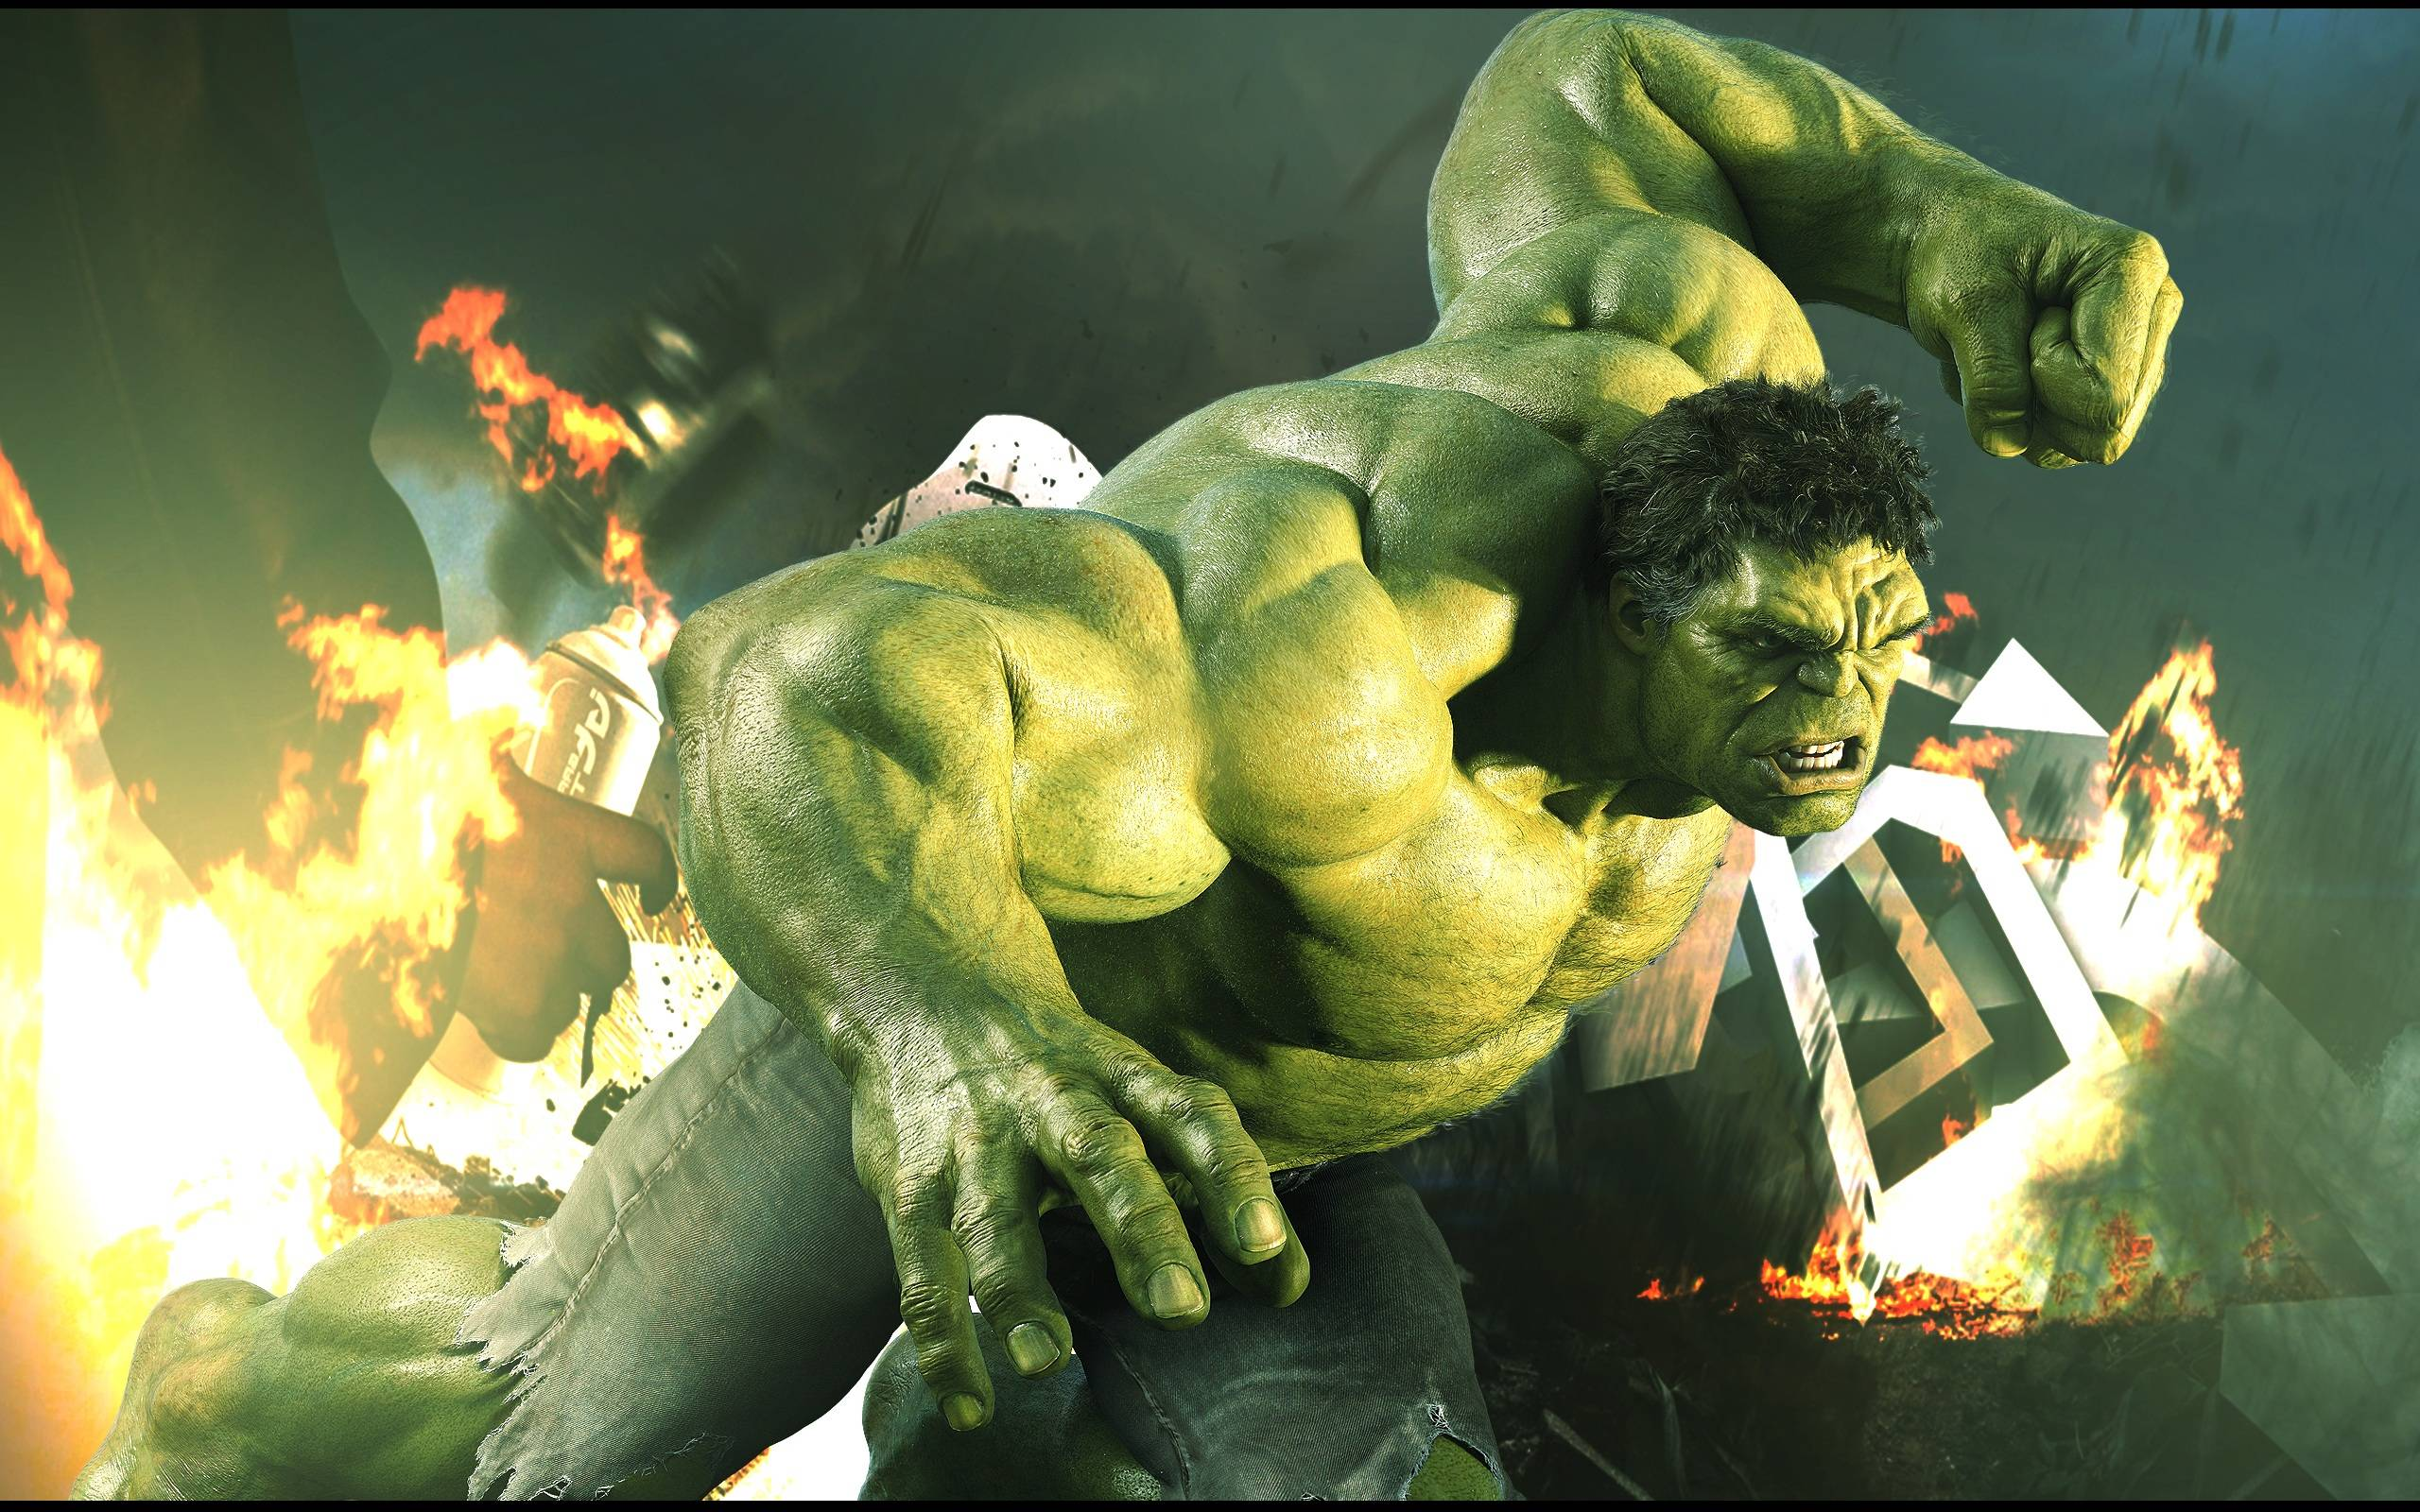 It's just a picture of Ambitious The Hulk Images